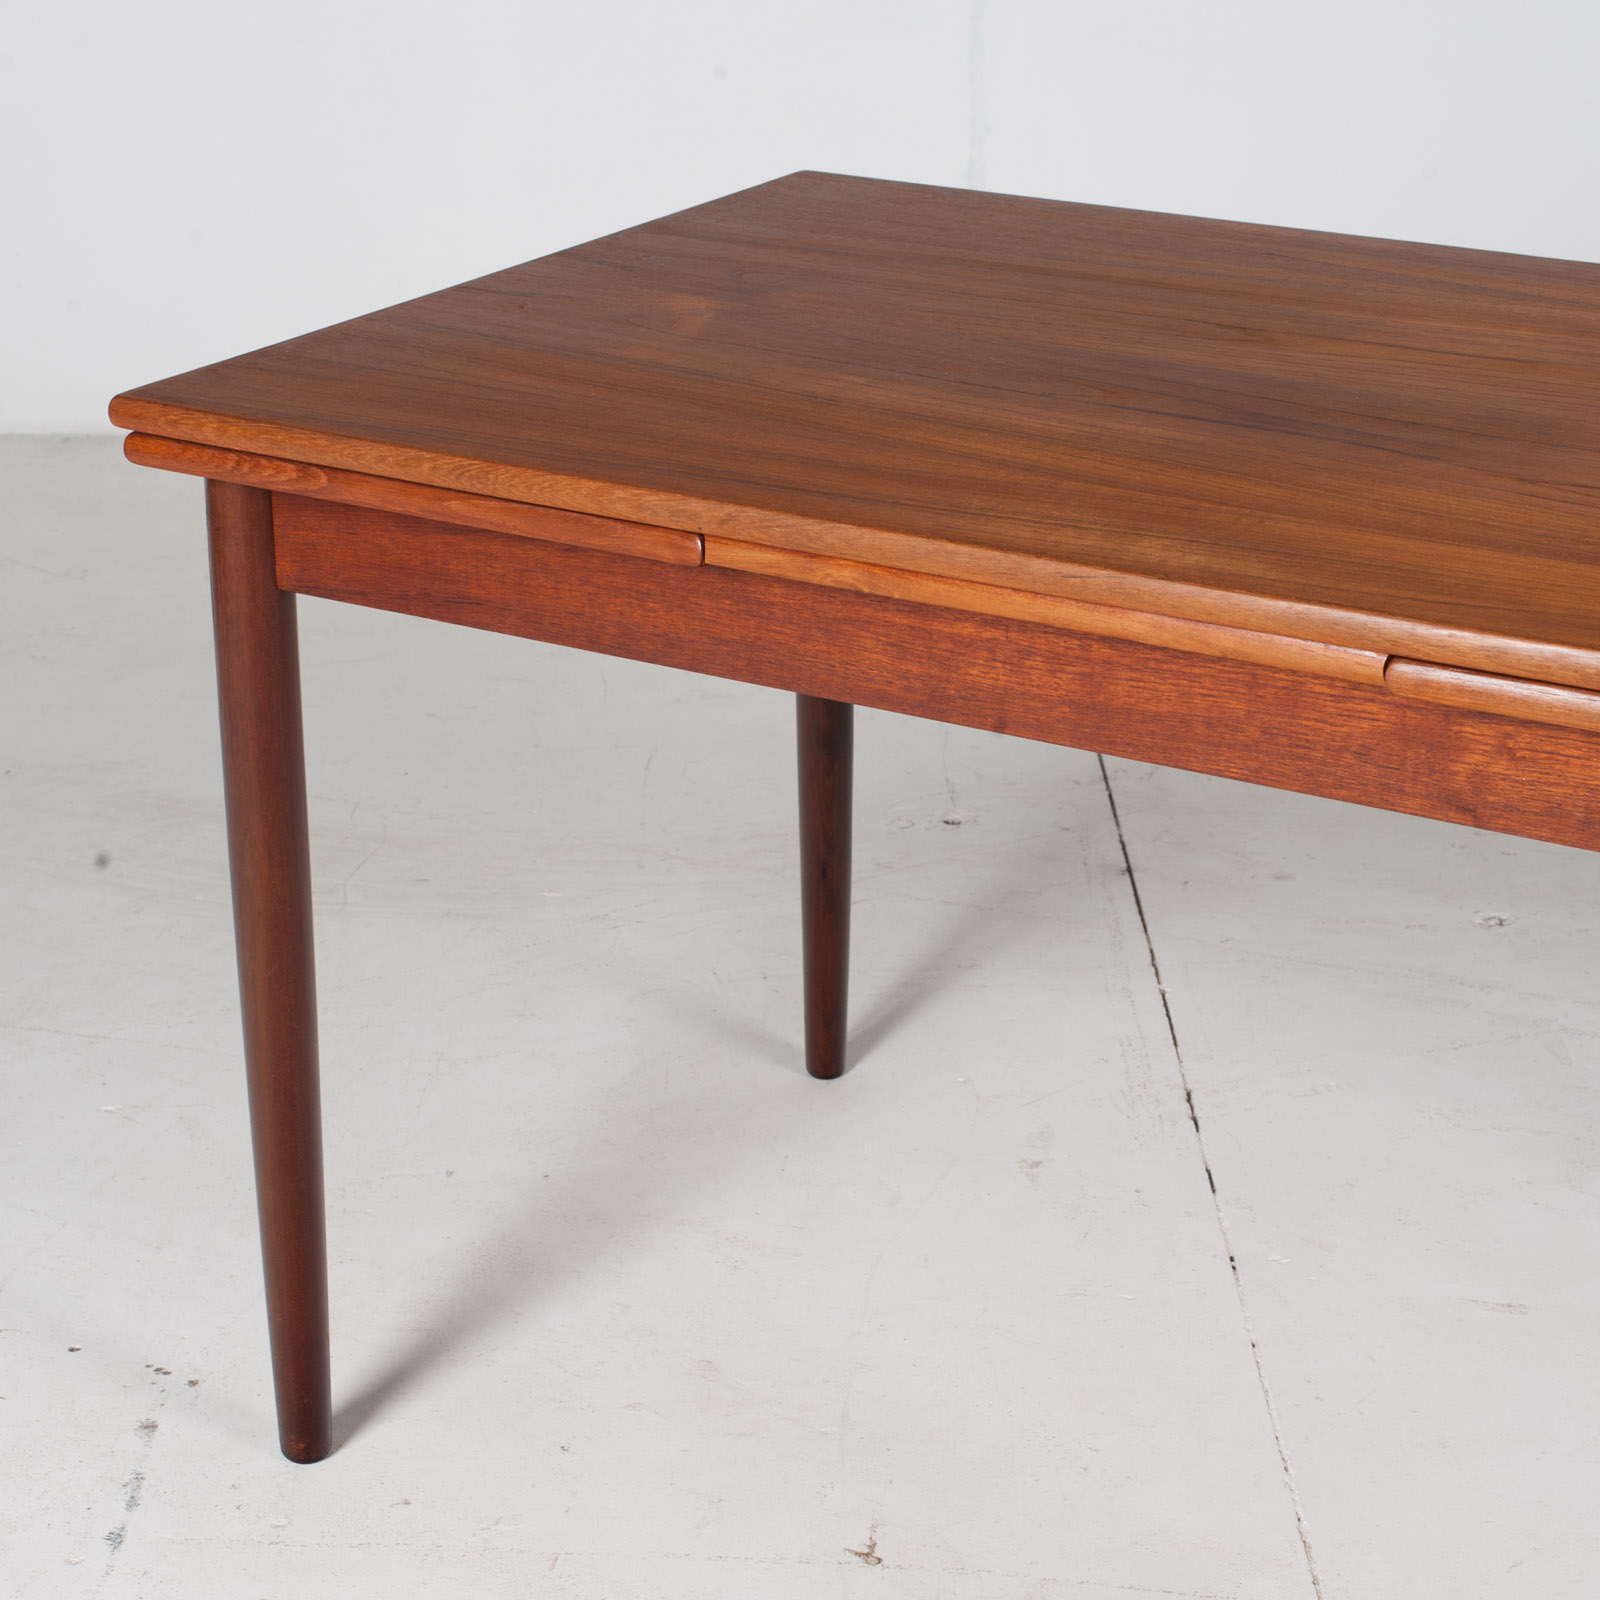 Extendable Rectangular Dining Table In Teak With Solid Edge, 1960s, Denmark5